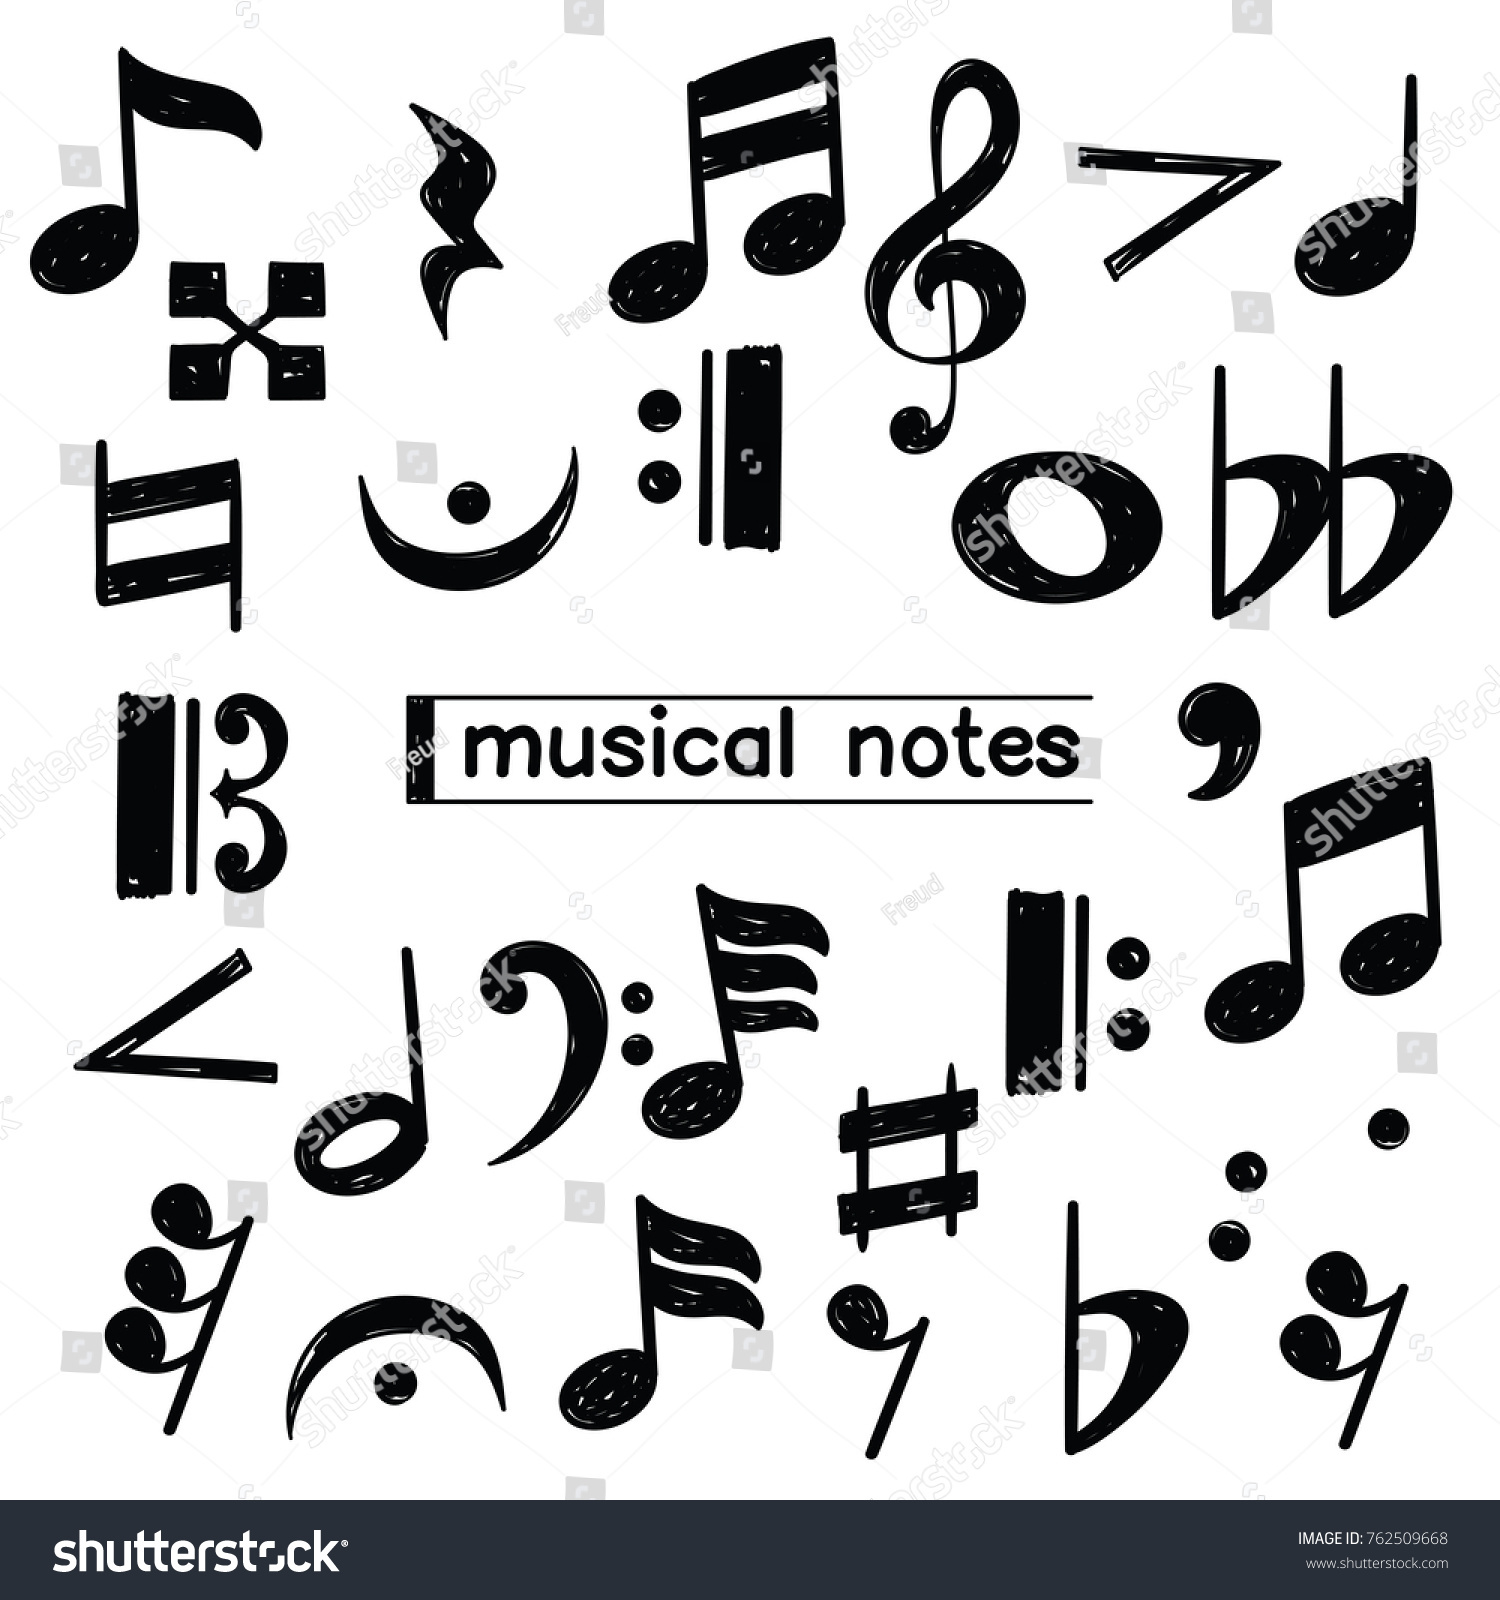 Musical notes symbol images symbol and sign ideas set doodle musical note symbol sketch stock vector 762509668 set of doodle musical note symbol sketch biocorpaavc Images